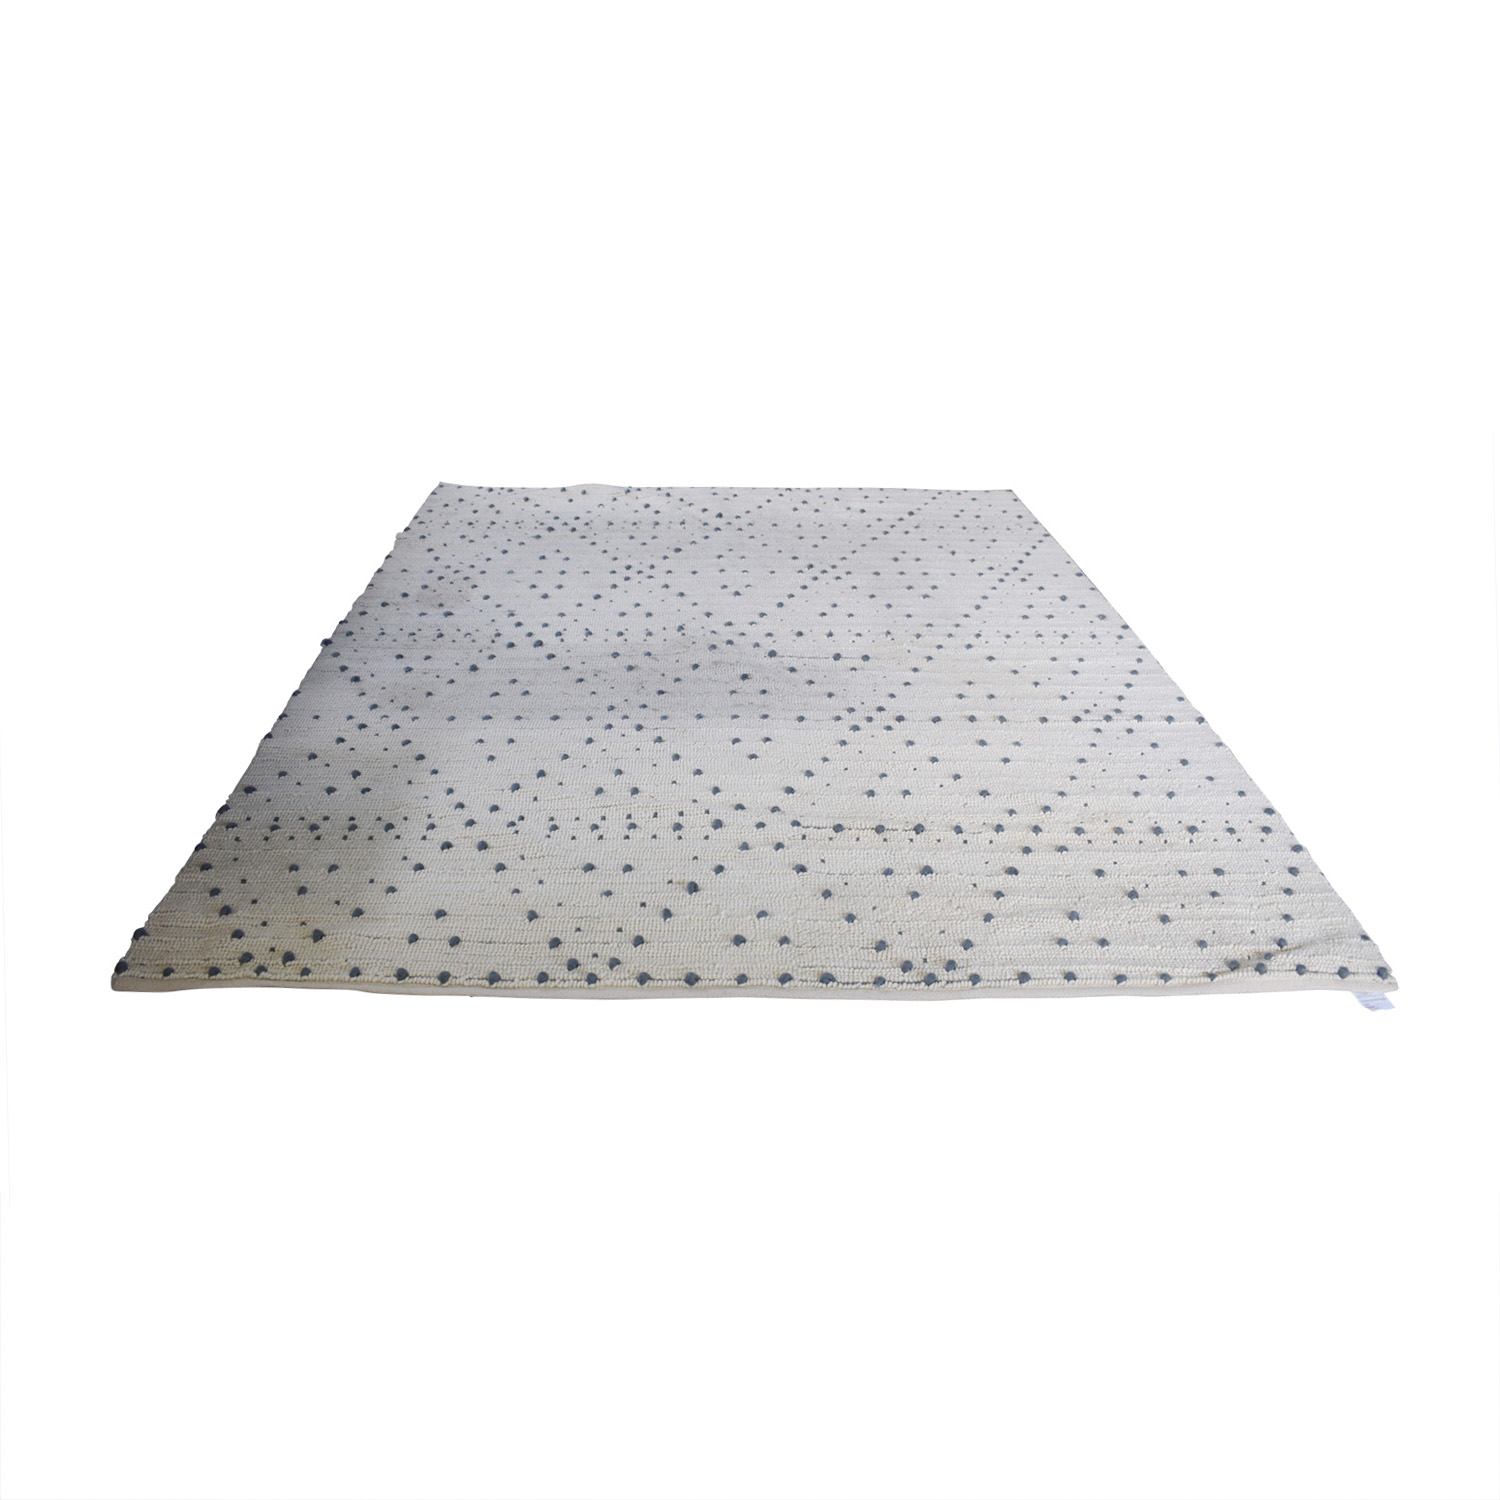 CB2 Orville White and Grey Rug / Rugs